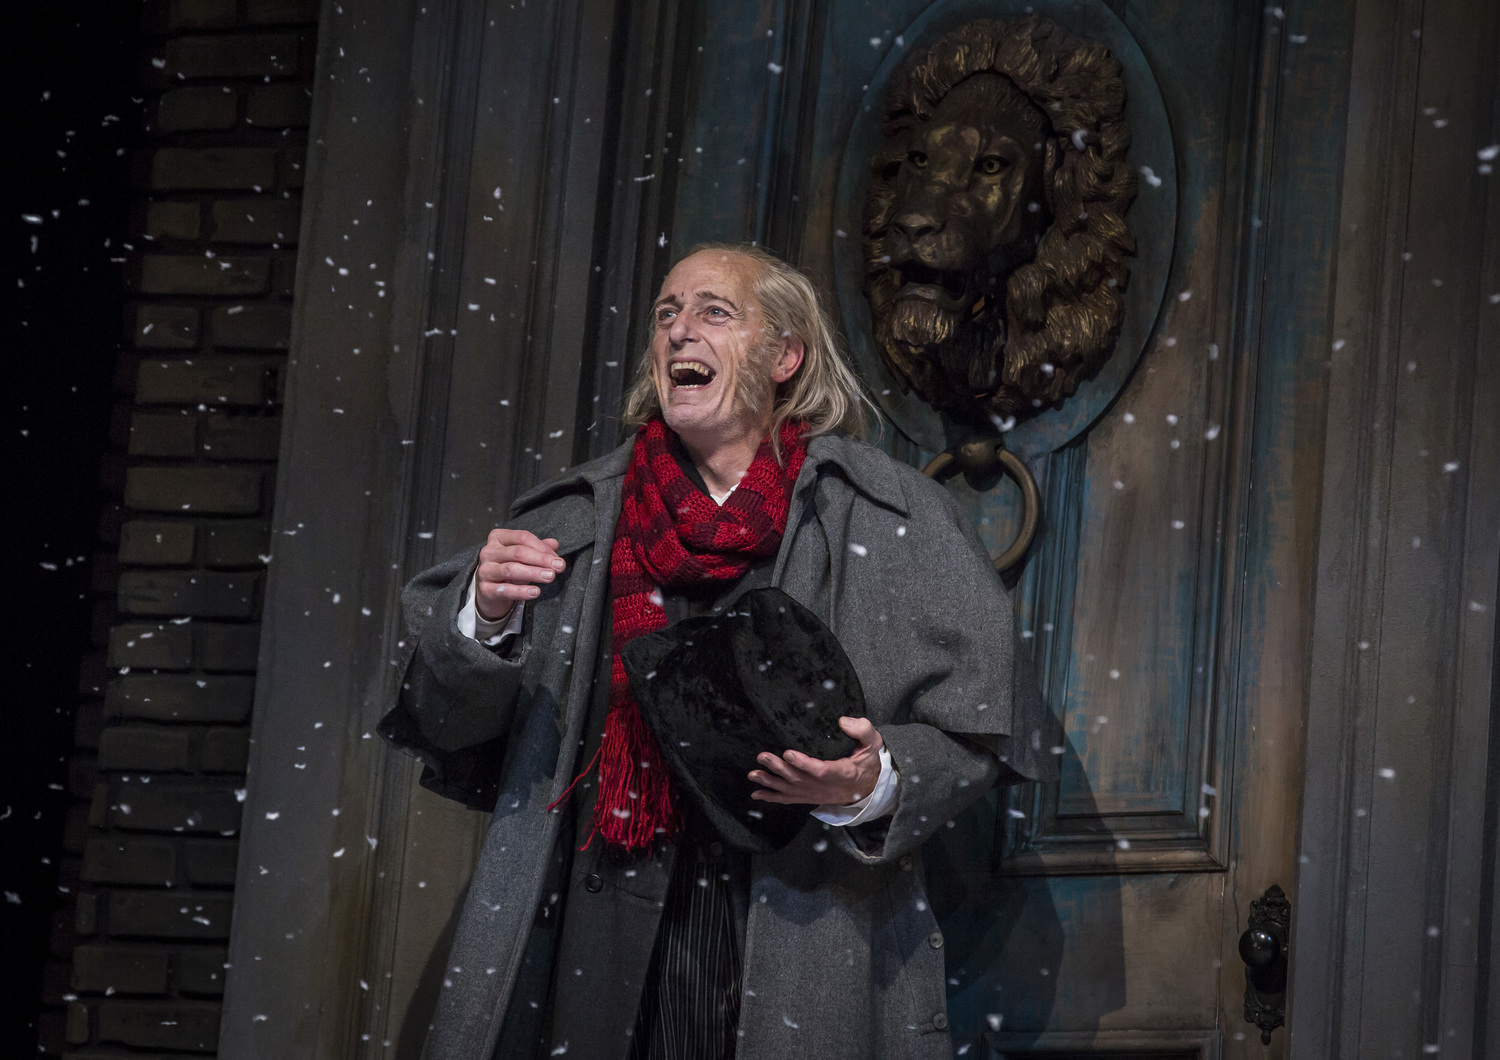 Regional Roundup: Top New Features This Week Around Our BroadwayWorld 12/1 - A Christmas Carol, Fiddler, School of Rock, and More!